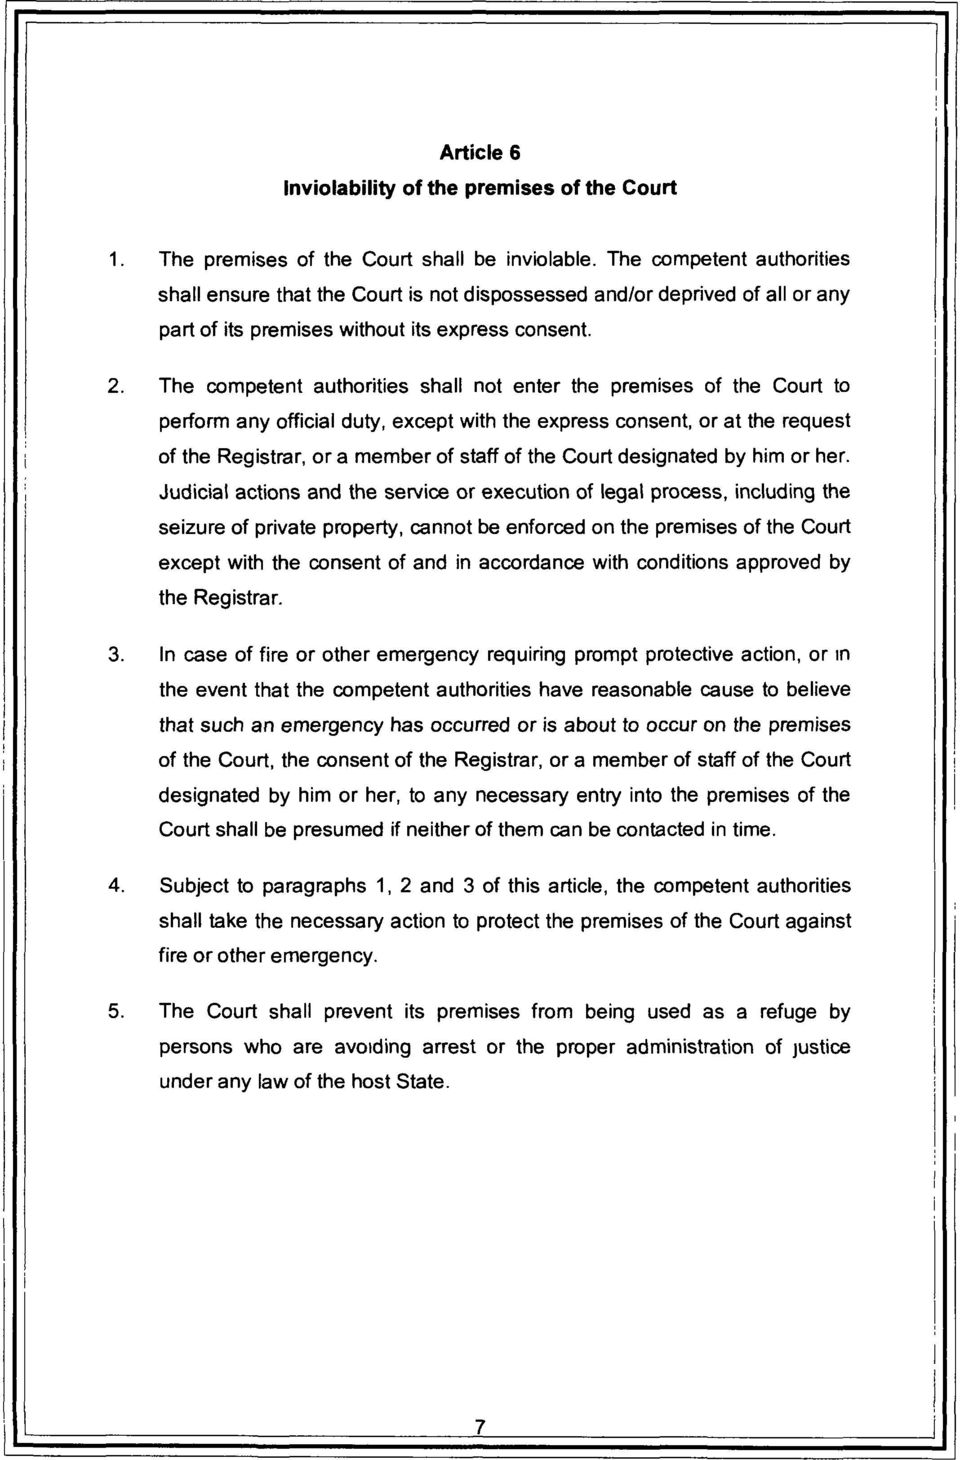 The competent authorities shall not enter the premises of the Court to perform any official duty, except with the express consent, or at the request of the Registrar, or a member of staff of the